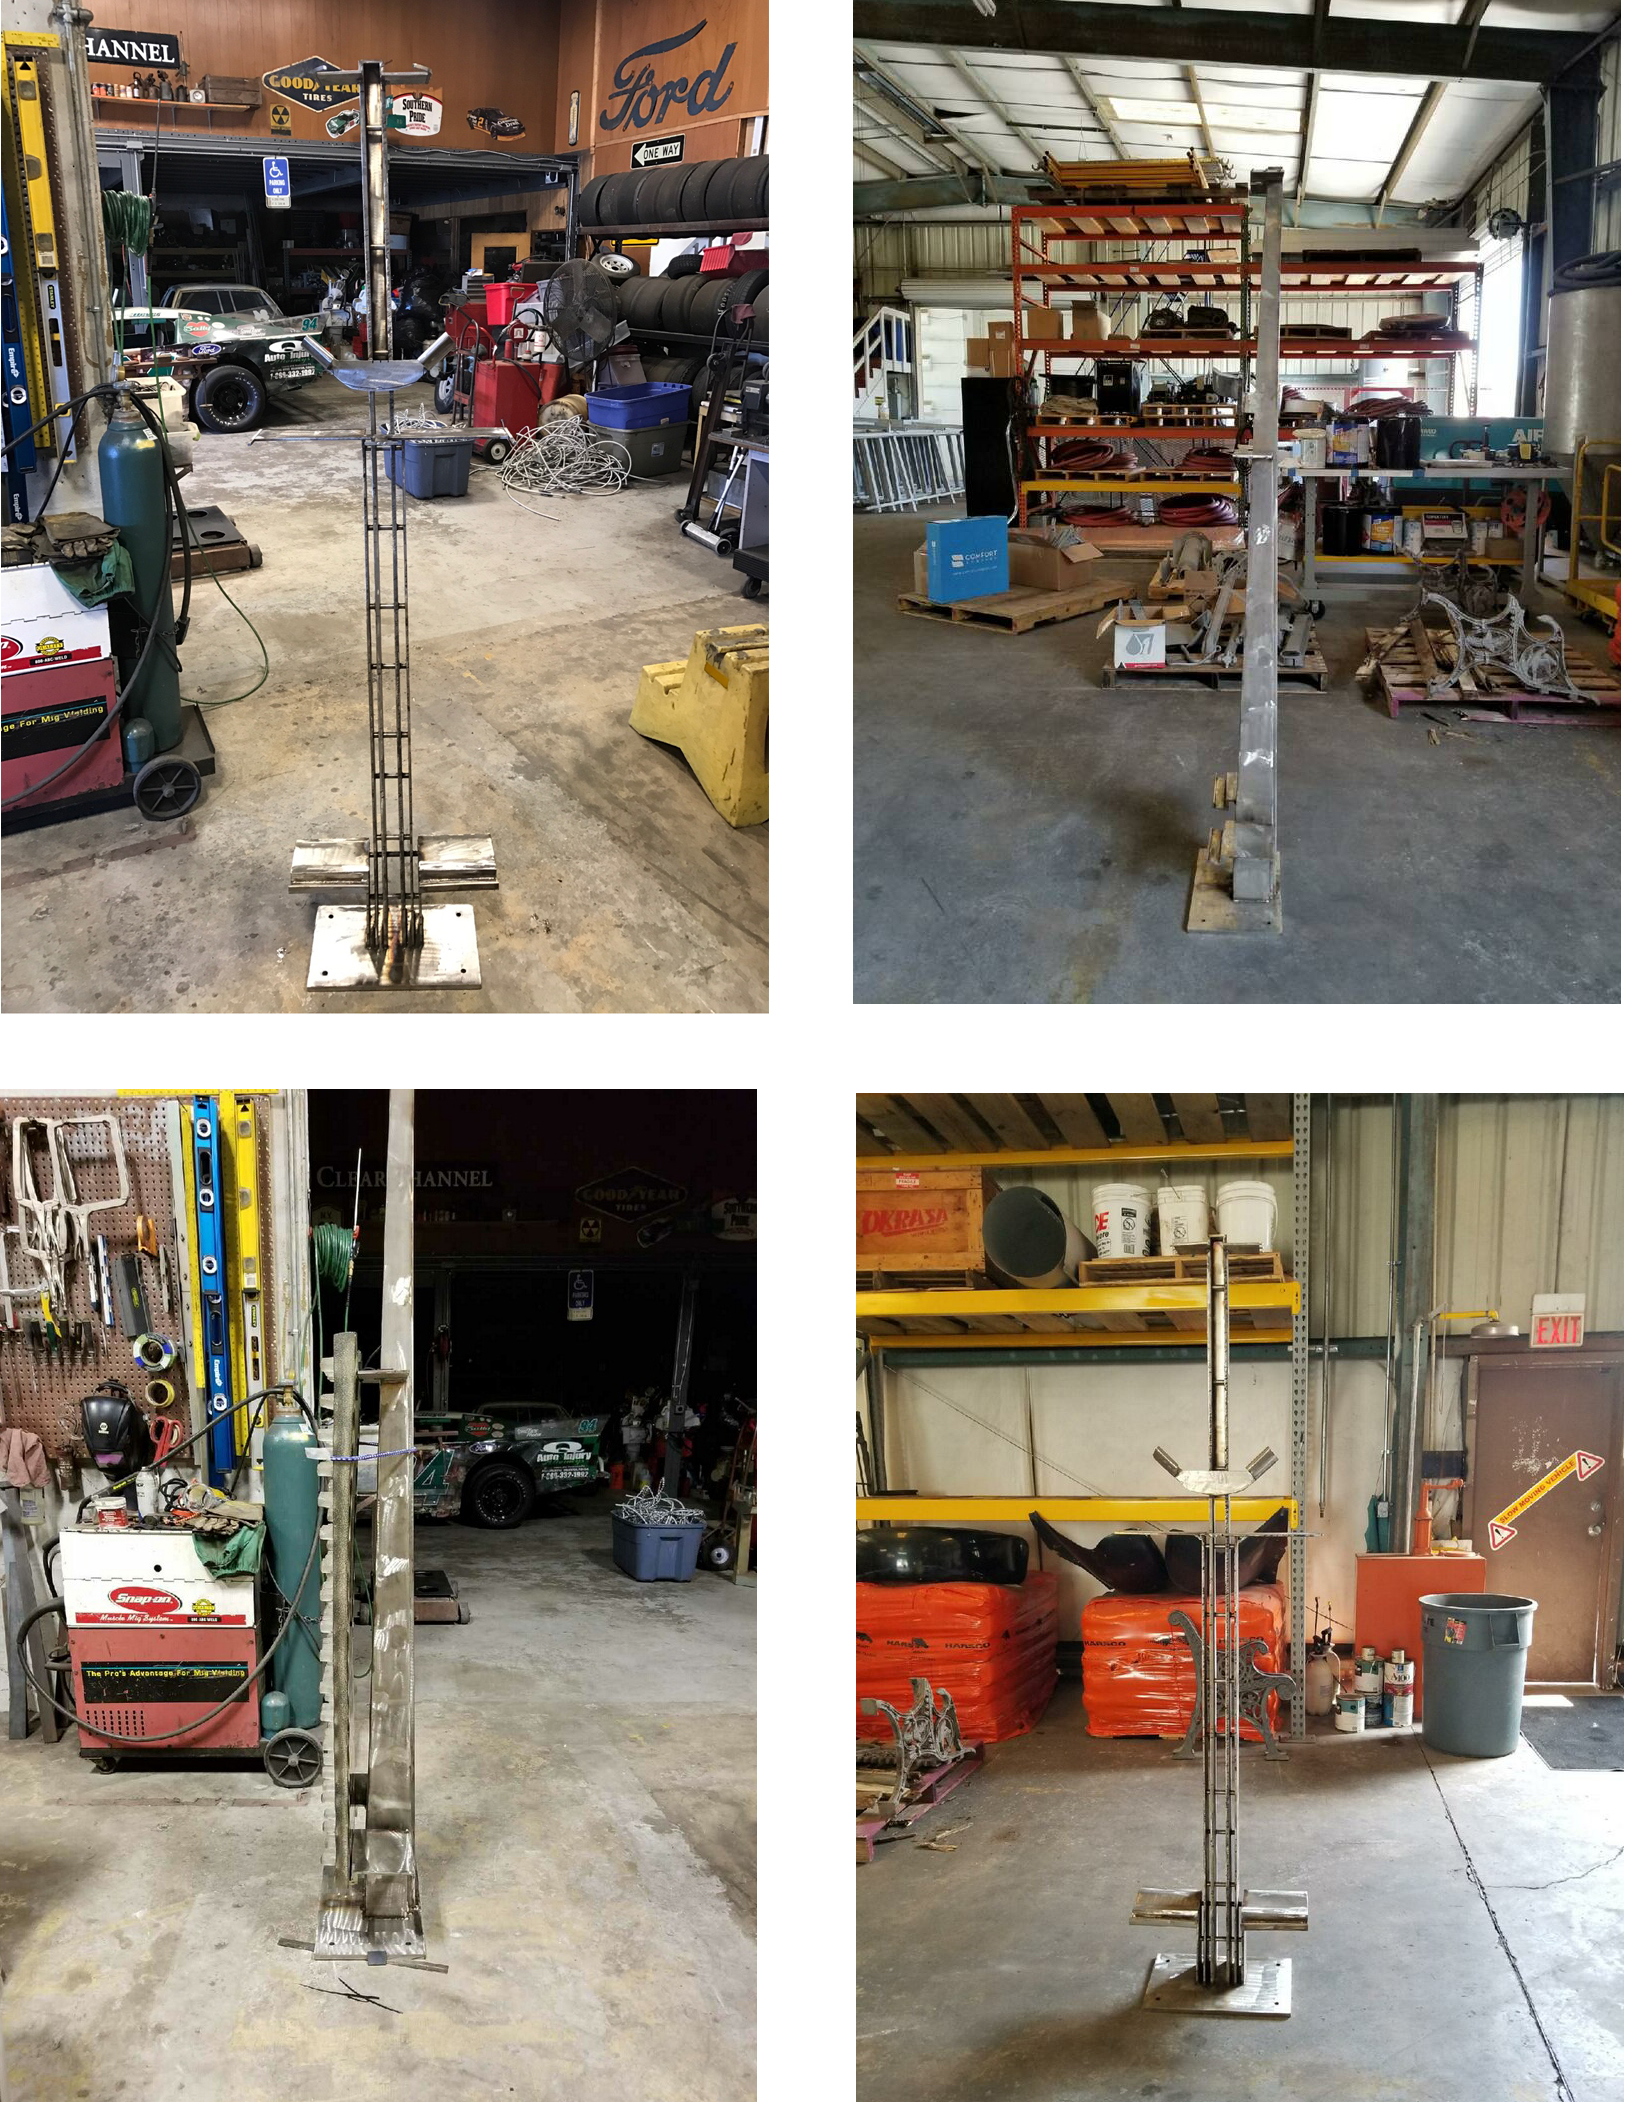 Steel stand fabrication and fitting the glass panels